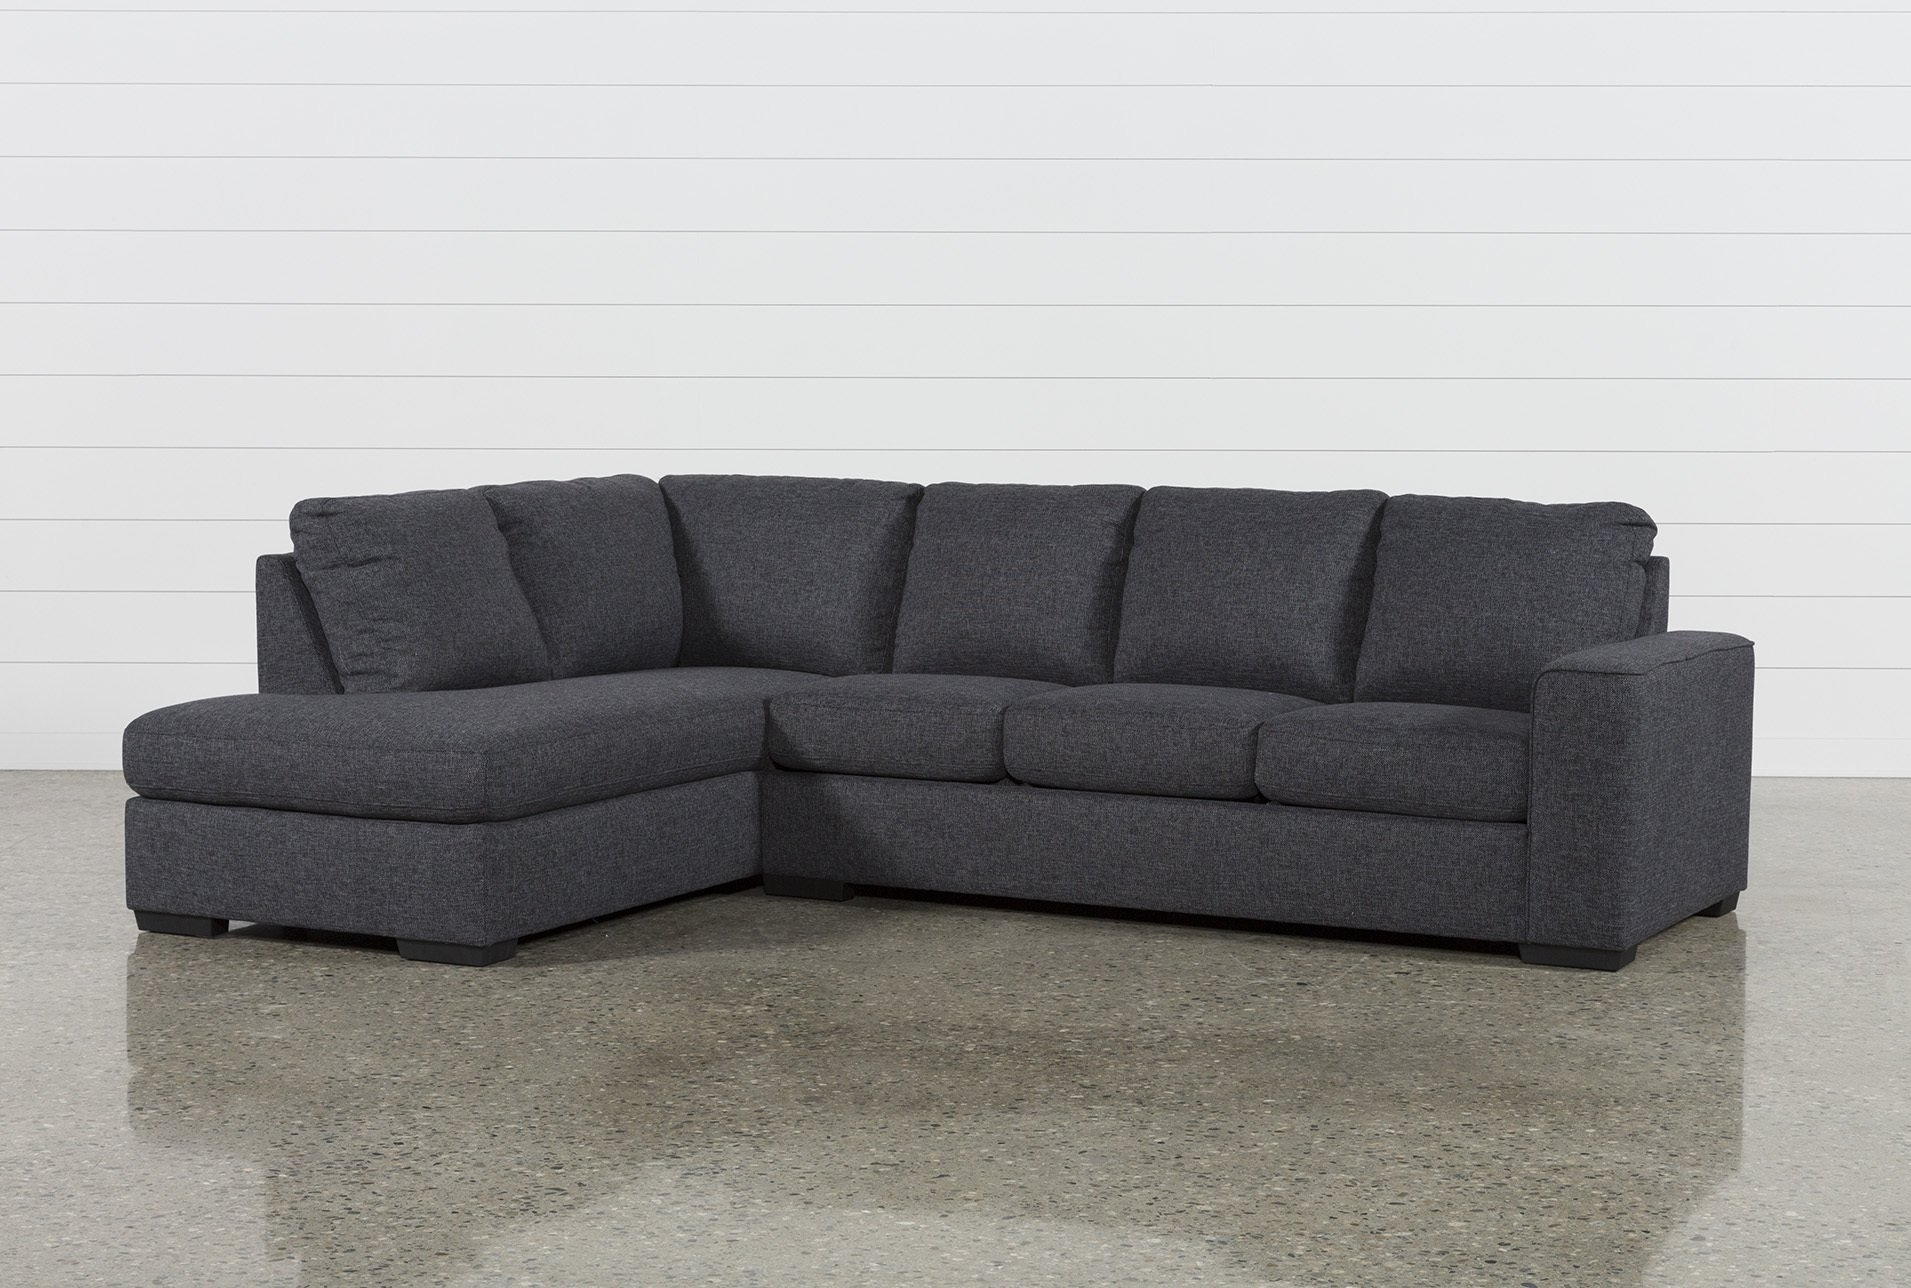 Lucy Dark Grey 2 Piece Sectional W/laf Chaise | Dark Grey And Products For Malbry Point 3 Piece Sectionals With Raf Chaise (View 11 of 25)